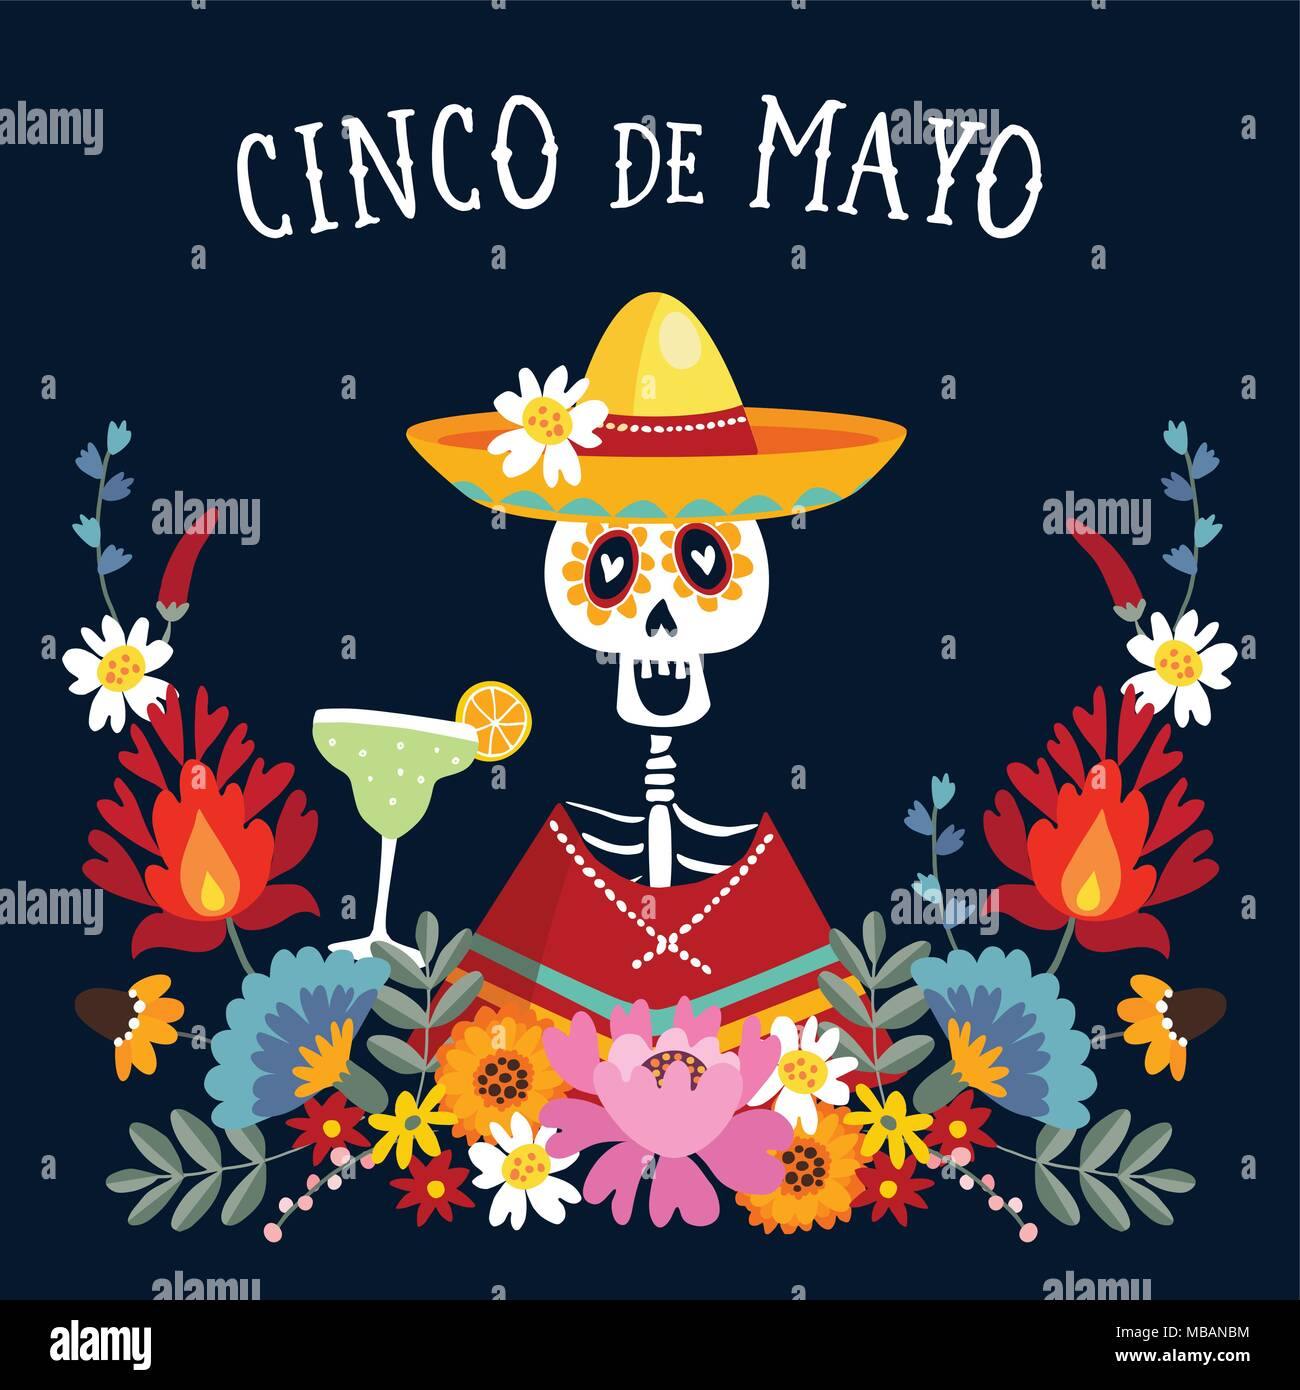 Cinco de mayo greeting card invitation with mexican skeleton with cinco de mayo greeting card invitation with mexican skeleton with sombrero hat drinking margarita cocktail chili peppers and decorative folklore flo m4hsunfo